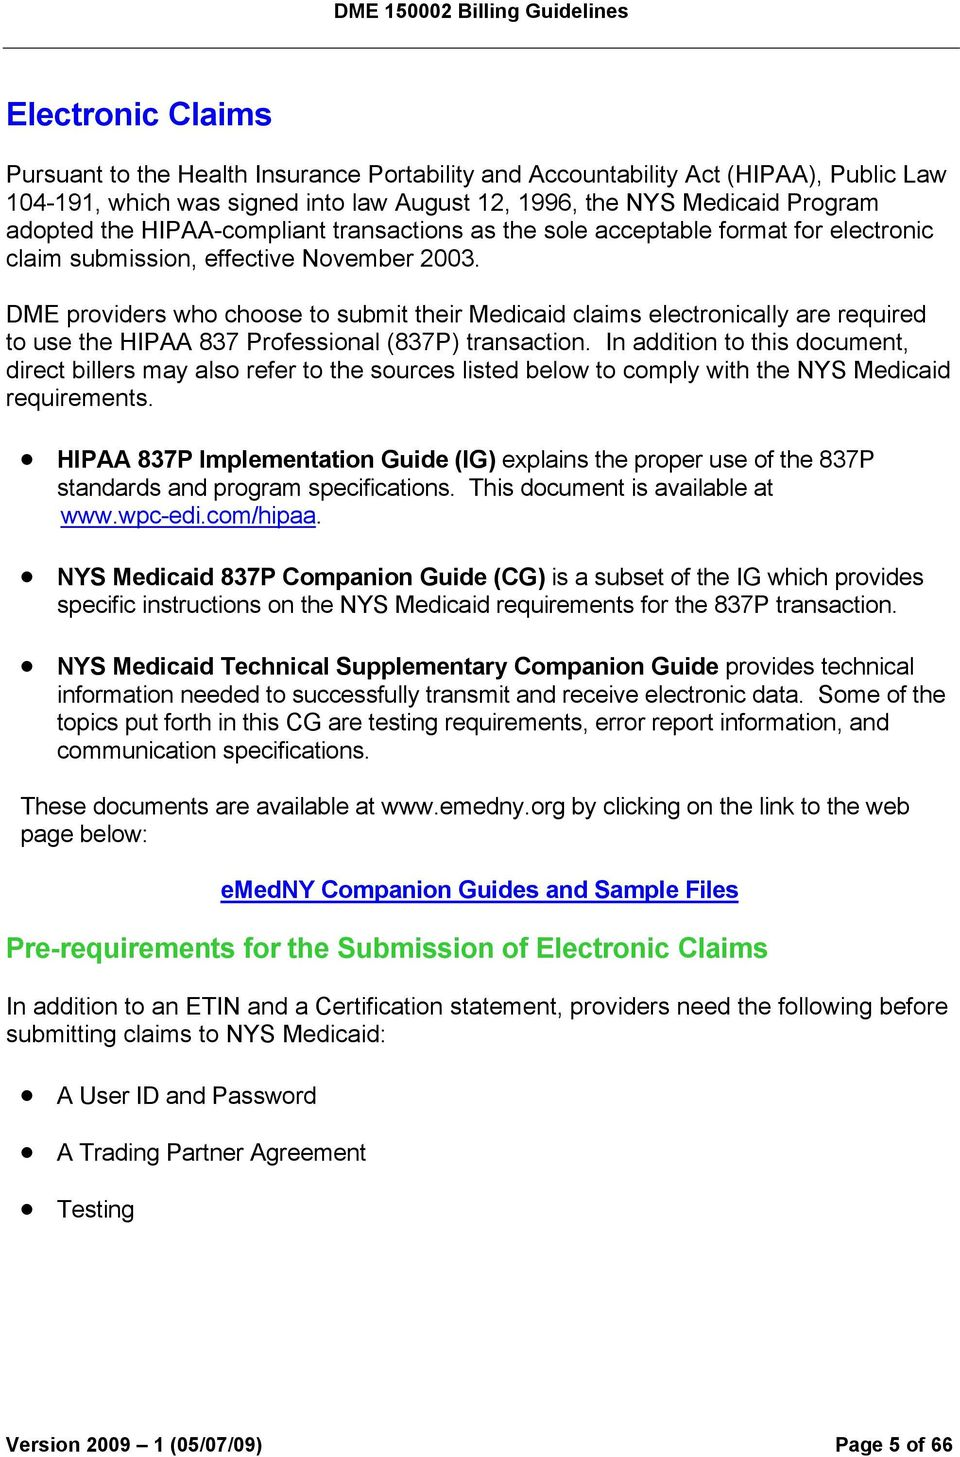 DME providers who choose to submit their Medicaid claims electronically are required to use the HIPAA 837 Professional (837P) transaction.